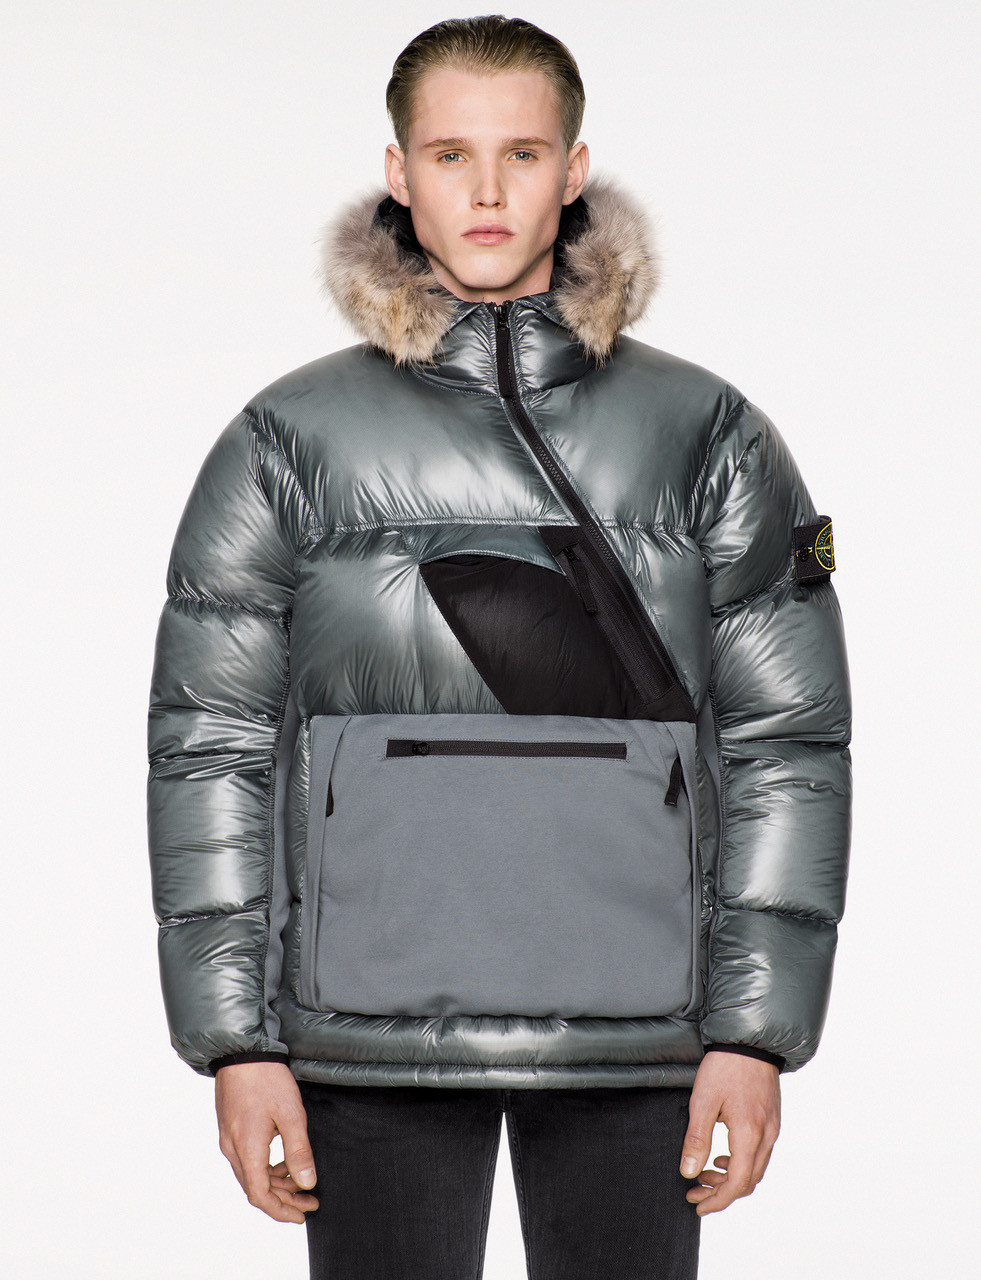 Italian brand Stone Island opened a flagship West Coast store in Los Angeles in November. The menswear label is known for its technical outerwear.